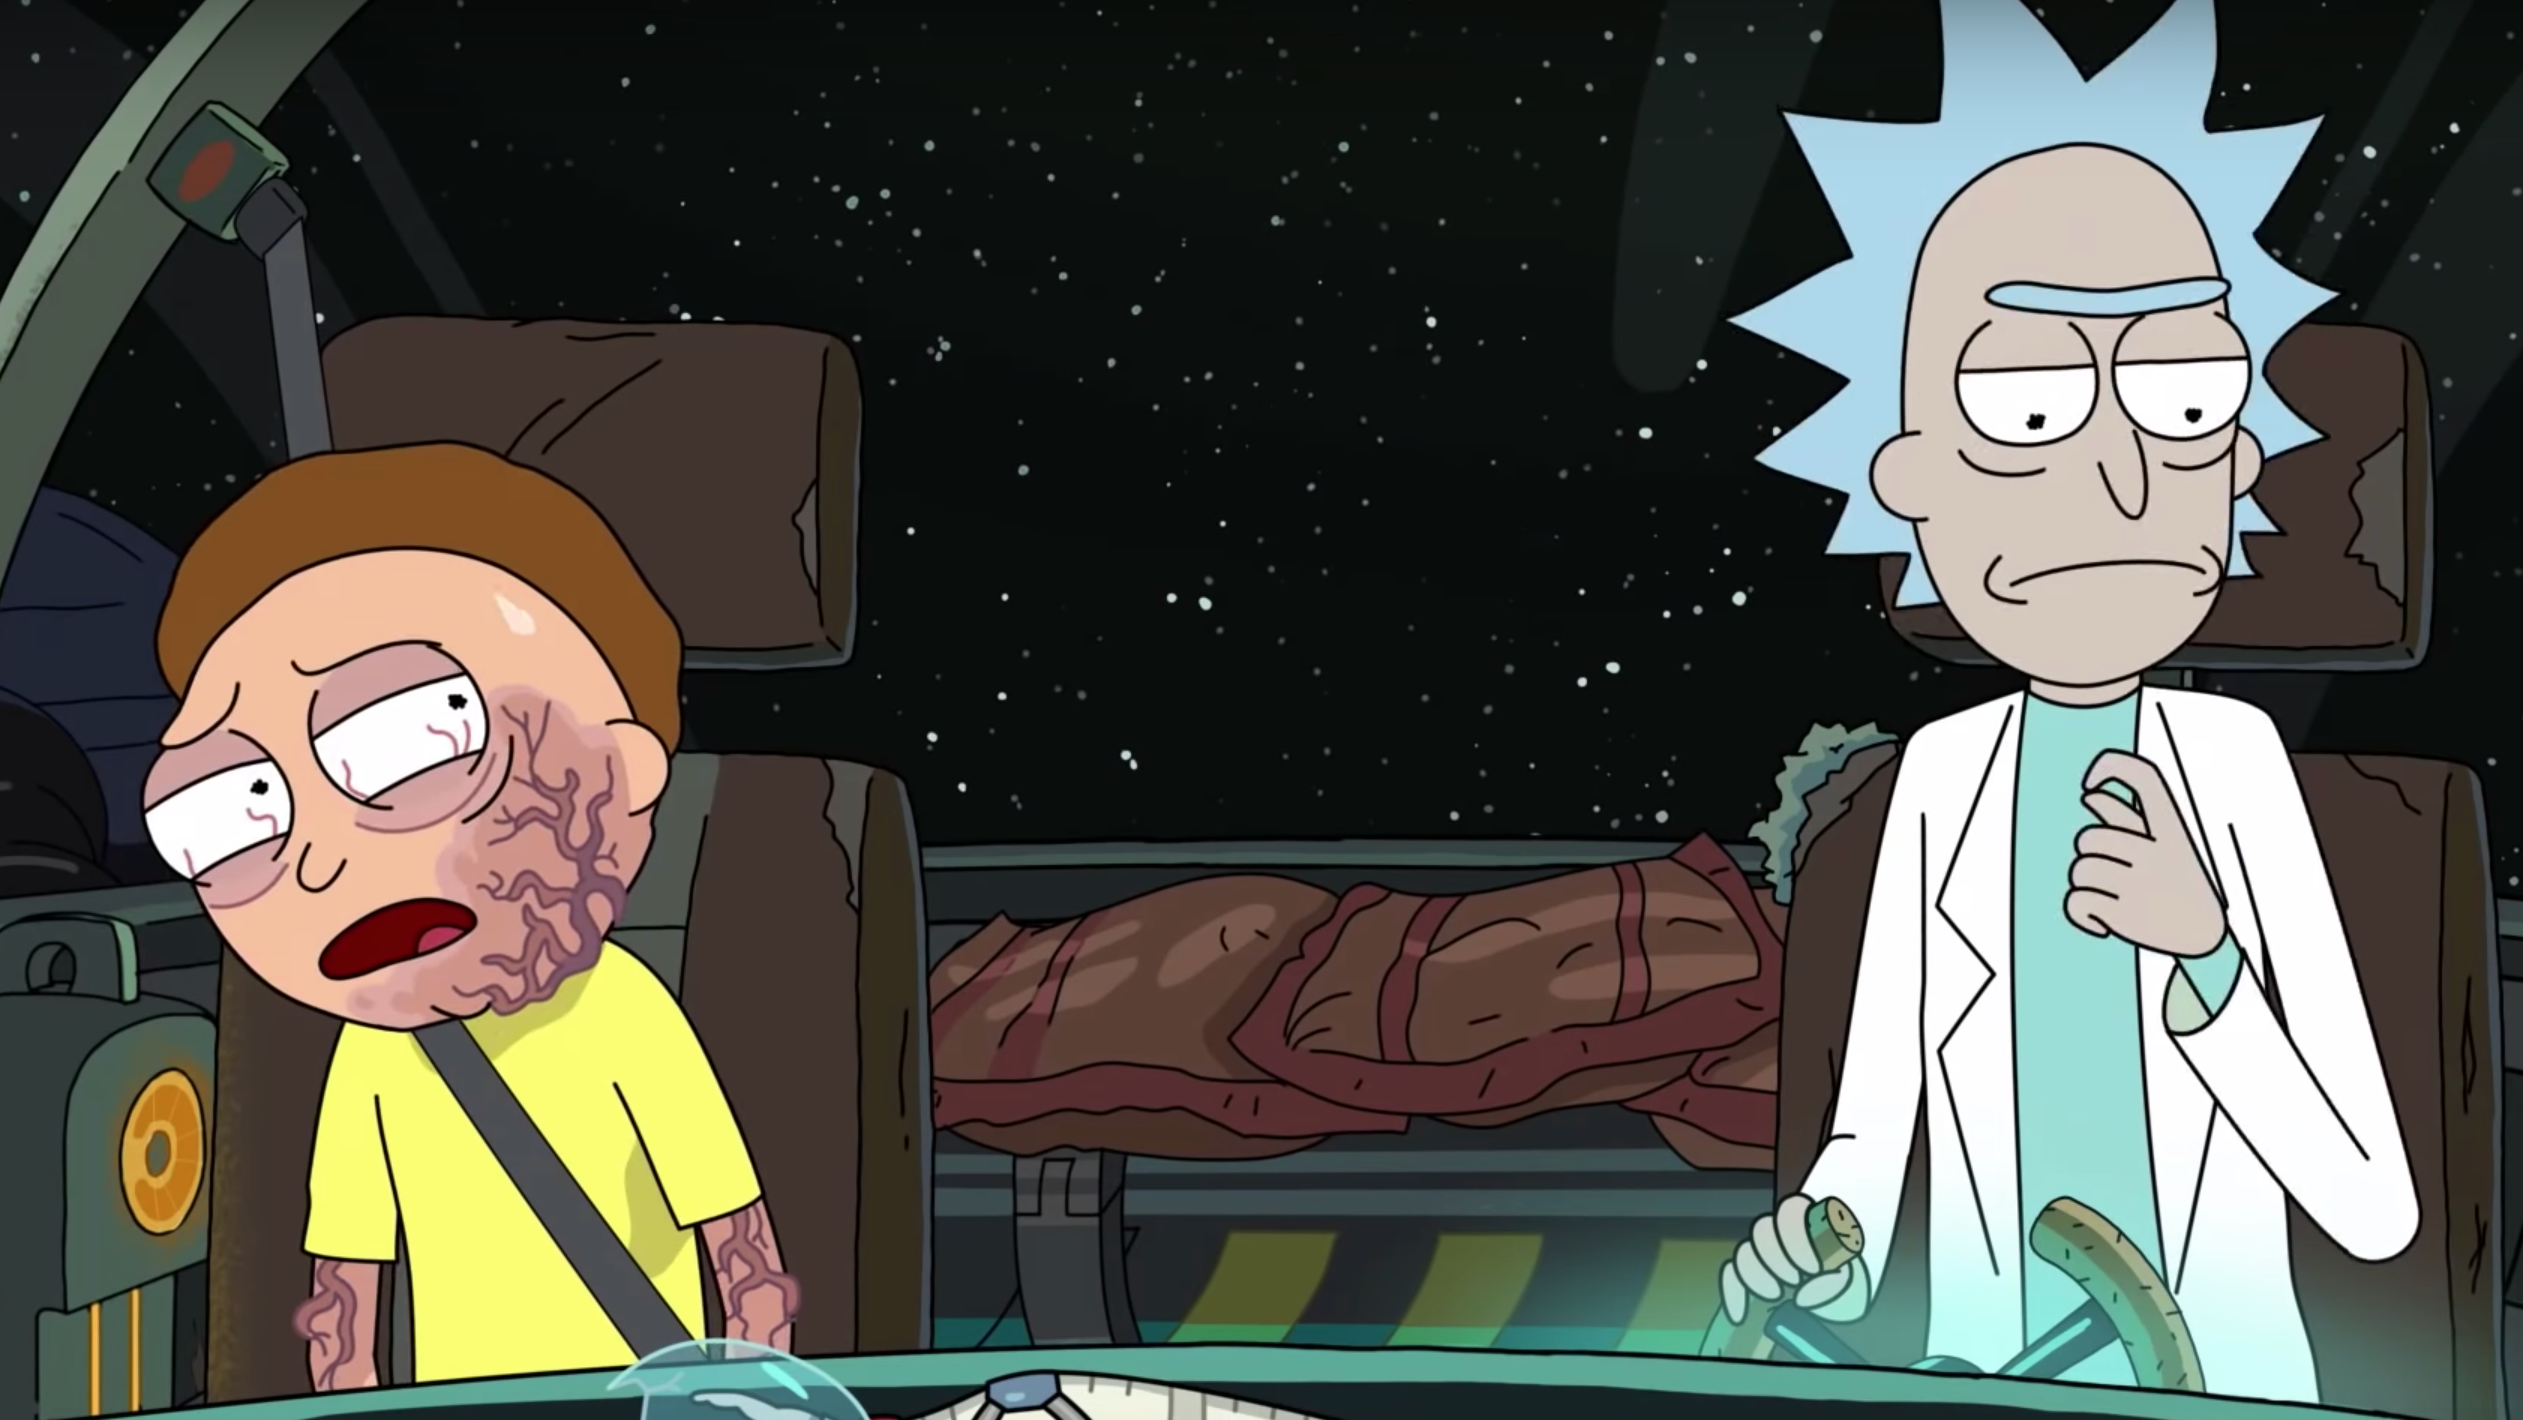 Rick And Morty's Season 4 Trailer Teases More Chaos And Fewer Episodes